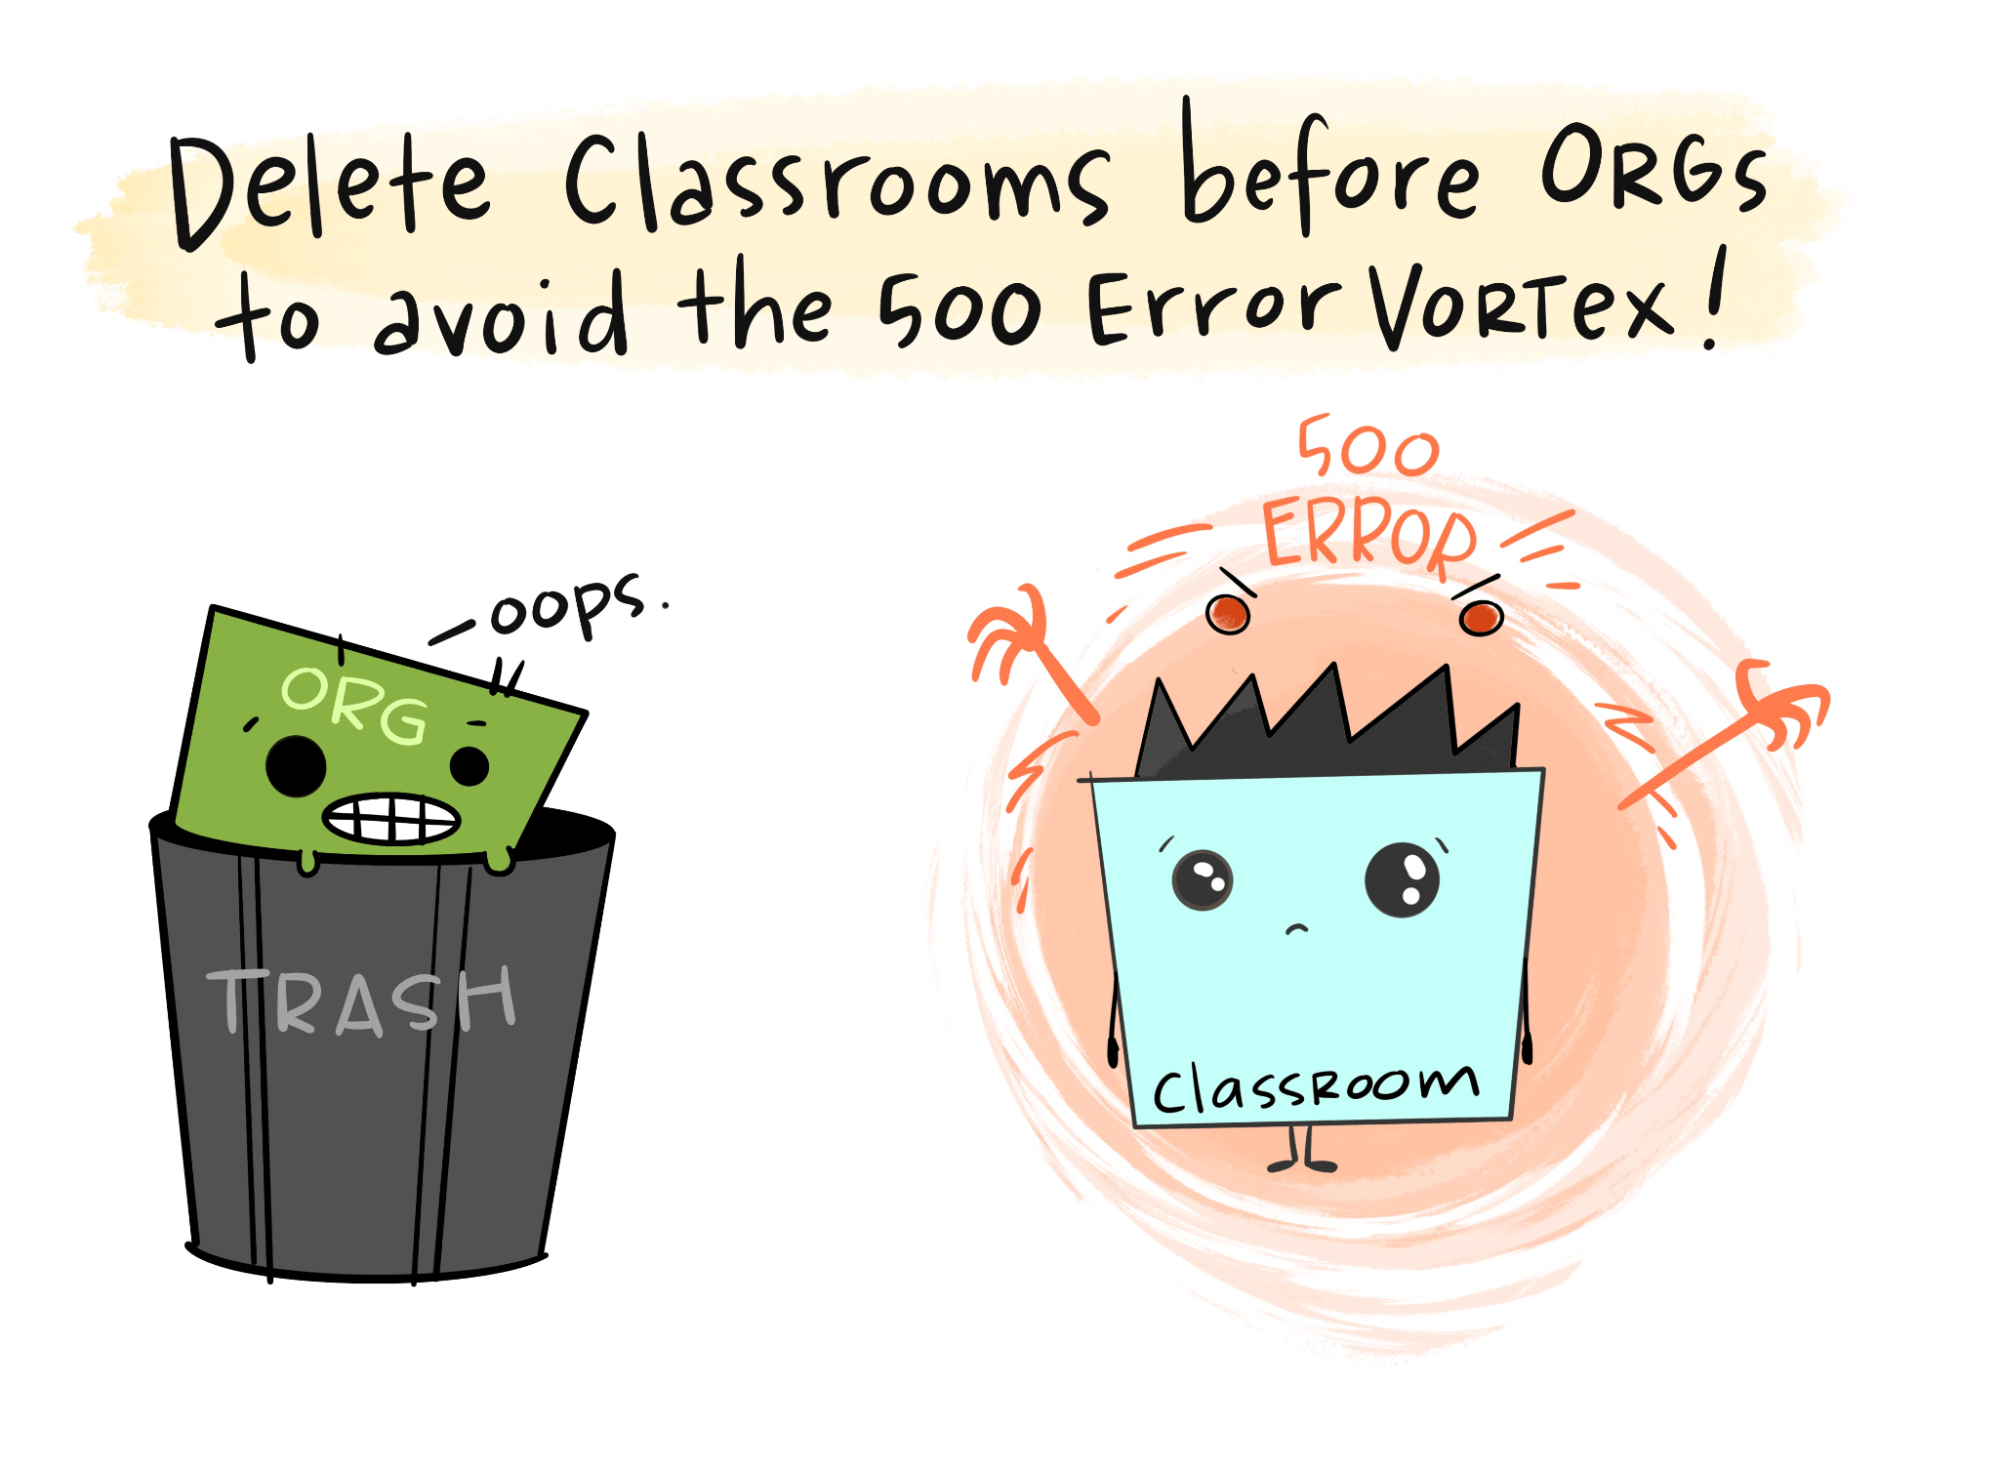 cartoon documents imploring the reader to delete classrooms before orgs